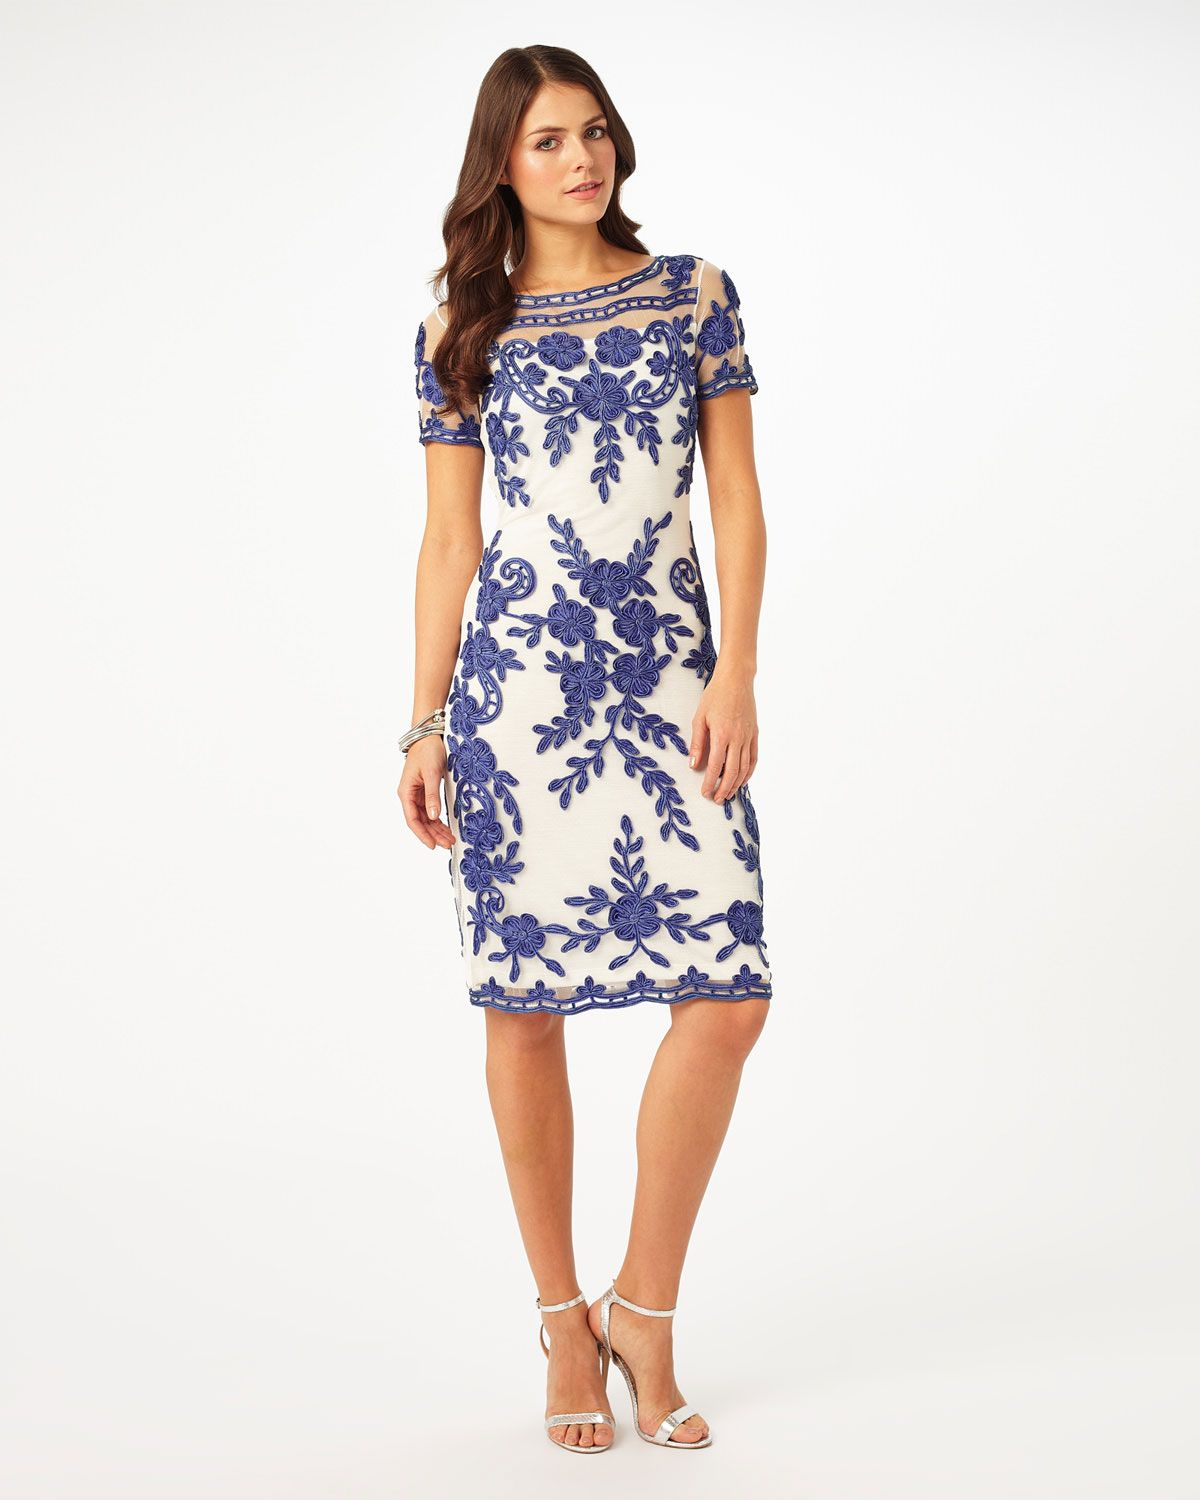 Short sleeve dresses for wedding guests  Sienna Tapework Dress  Wedding guest  Pinterest  Short sleeves